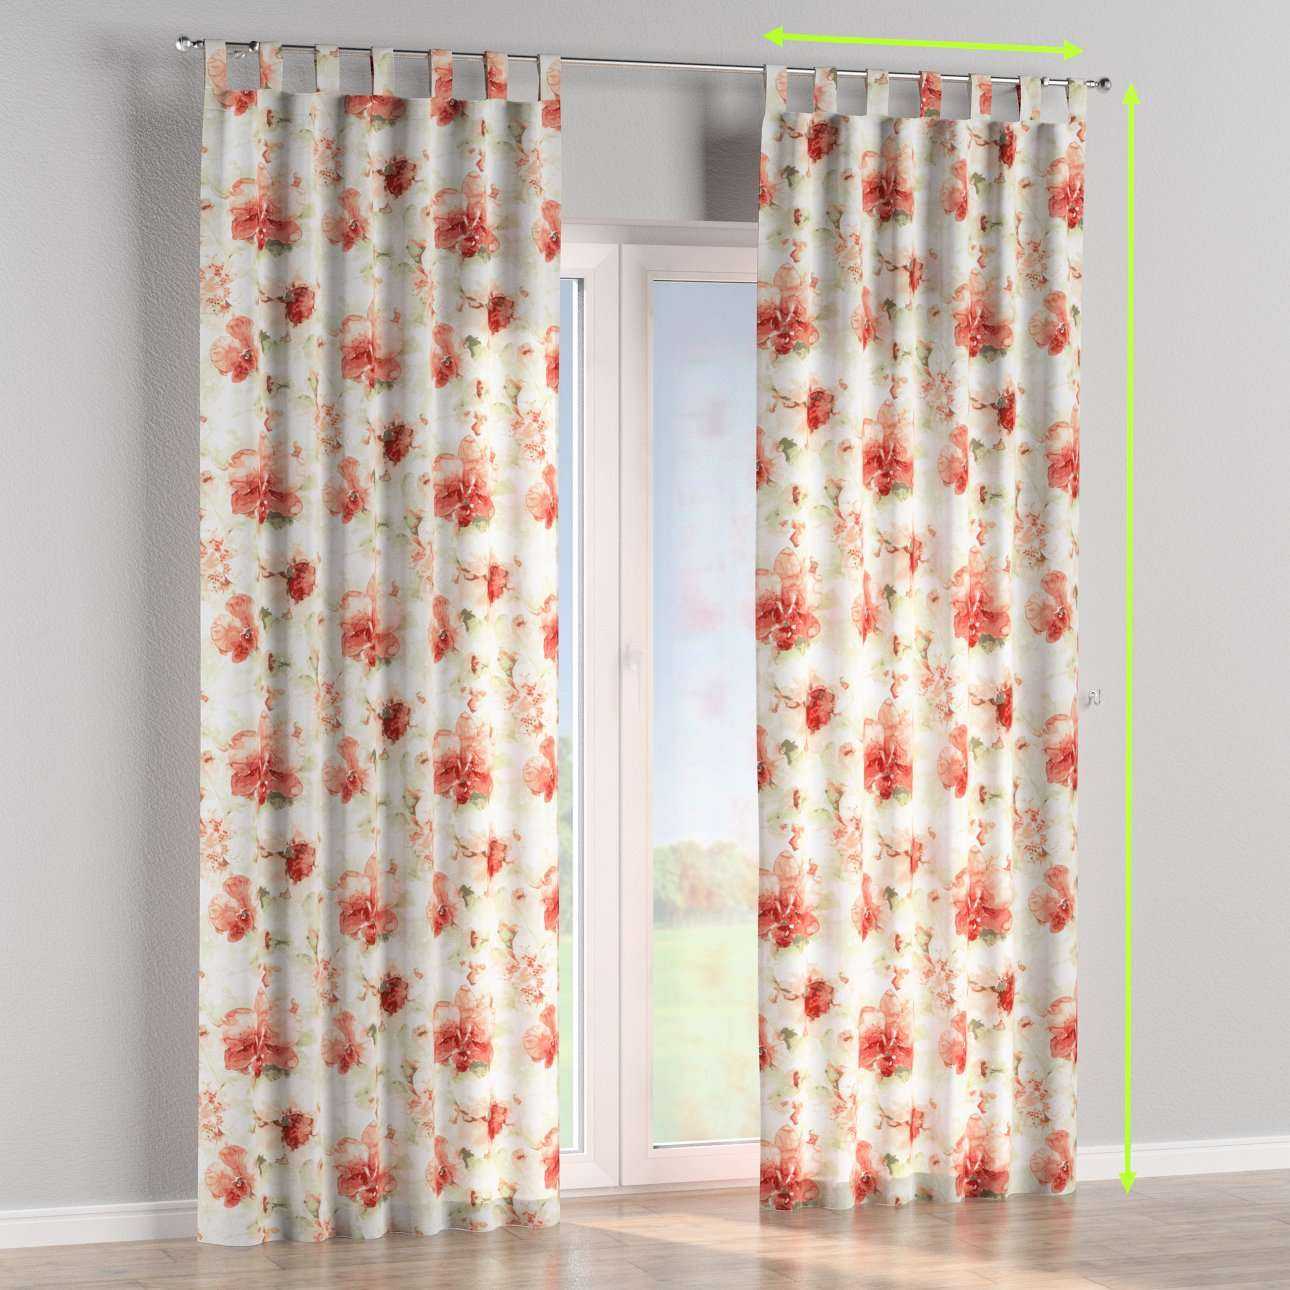 Tab top curtains in collection Acapulco, fabric: 141-34